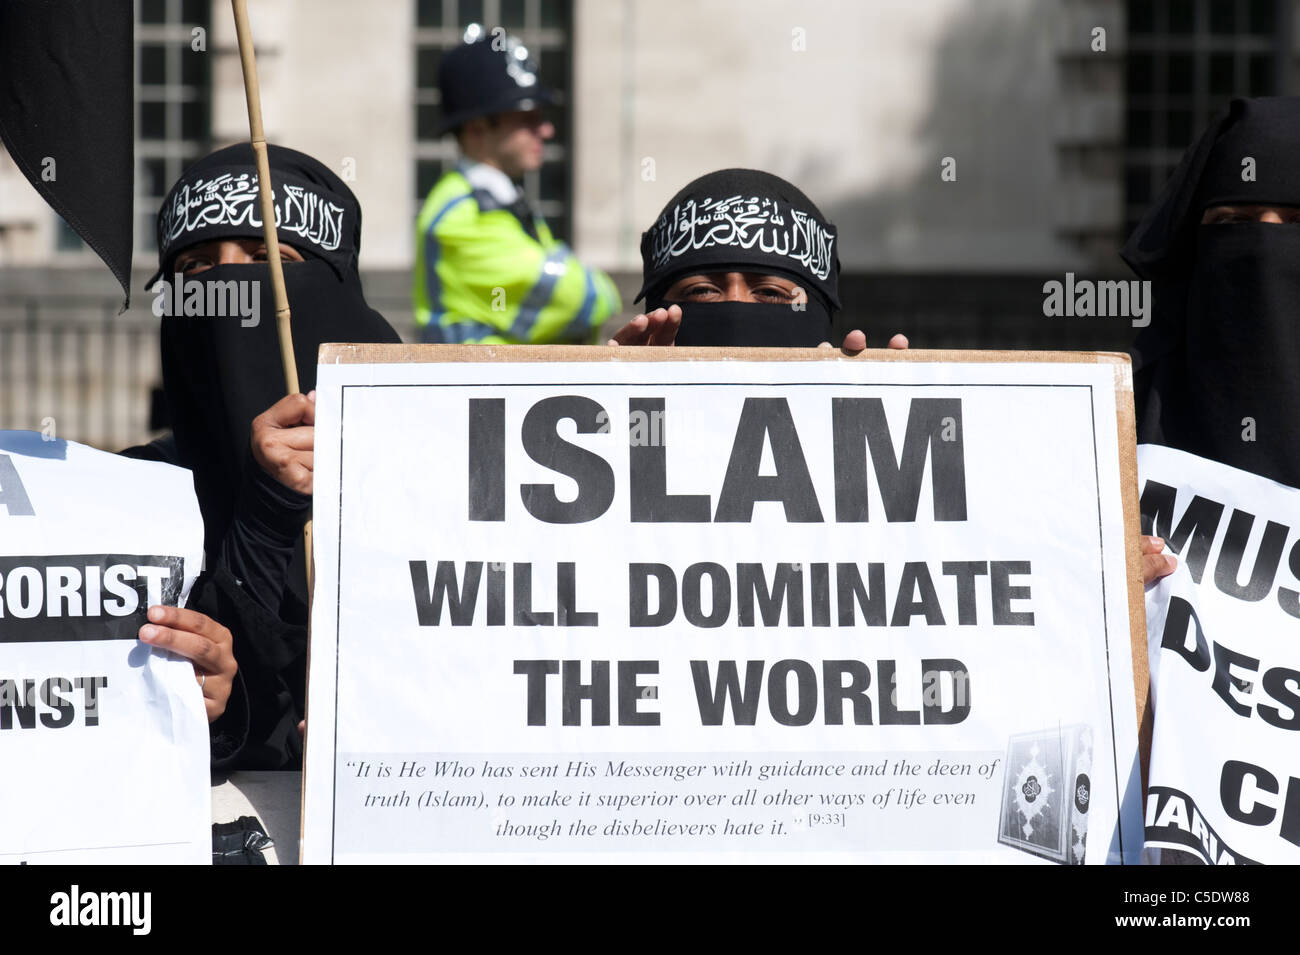 Muslim women wearing the niqab demonstrating for Muslim domination of the world in London, UK - Stock Image